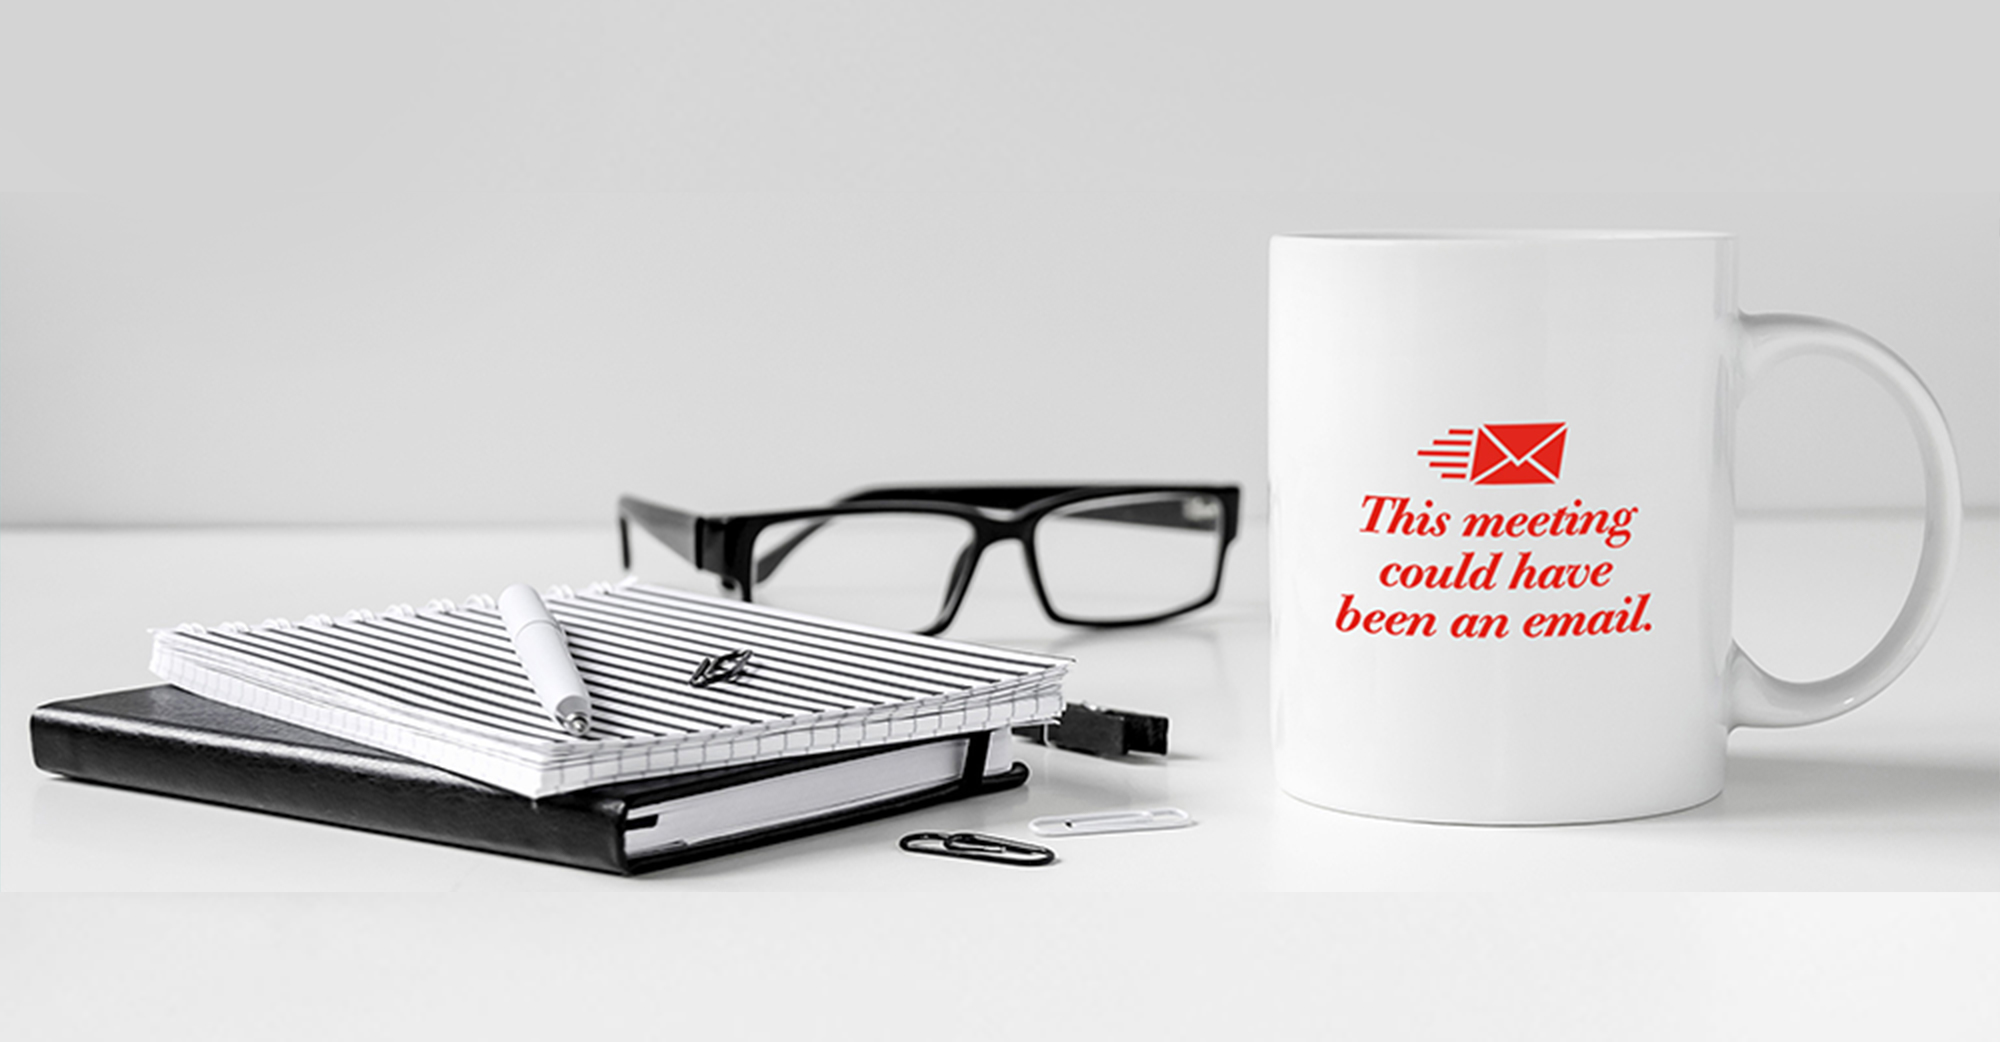 Lighten the Mood with Funny Office Gifts for Employees